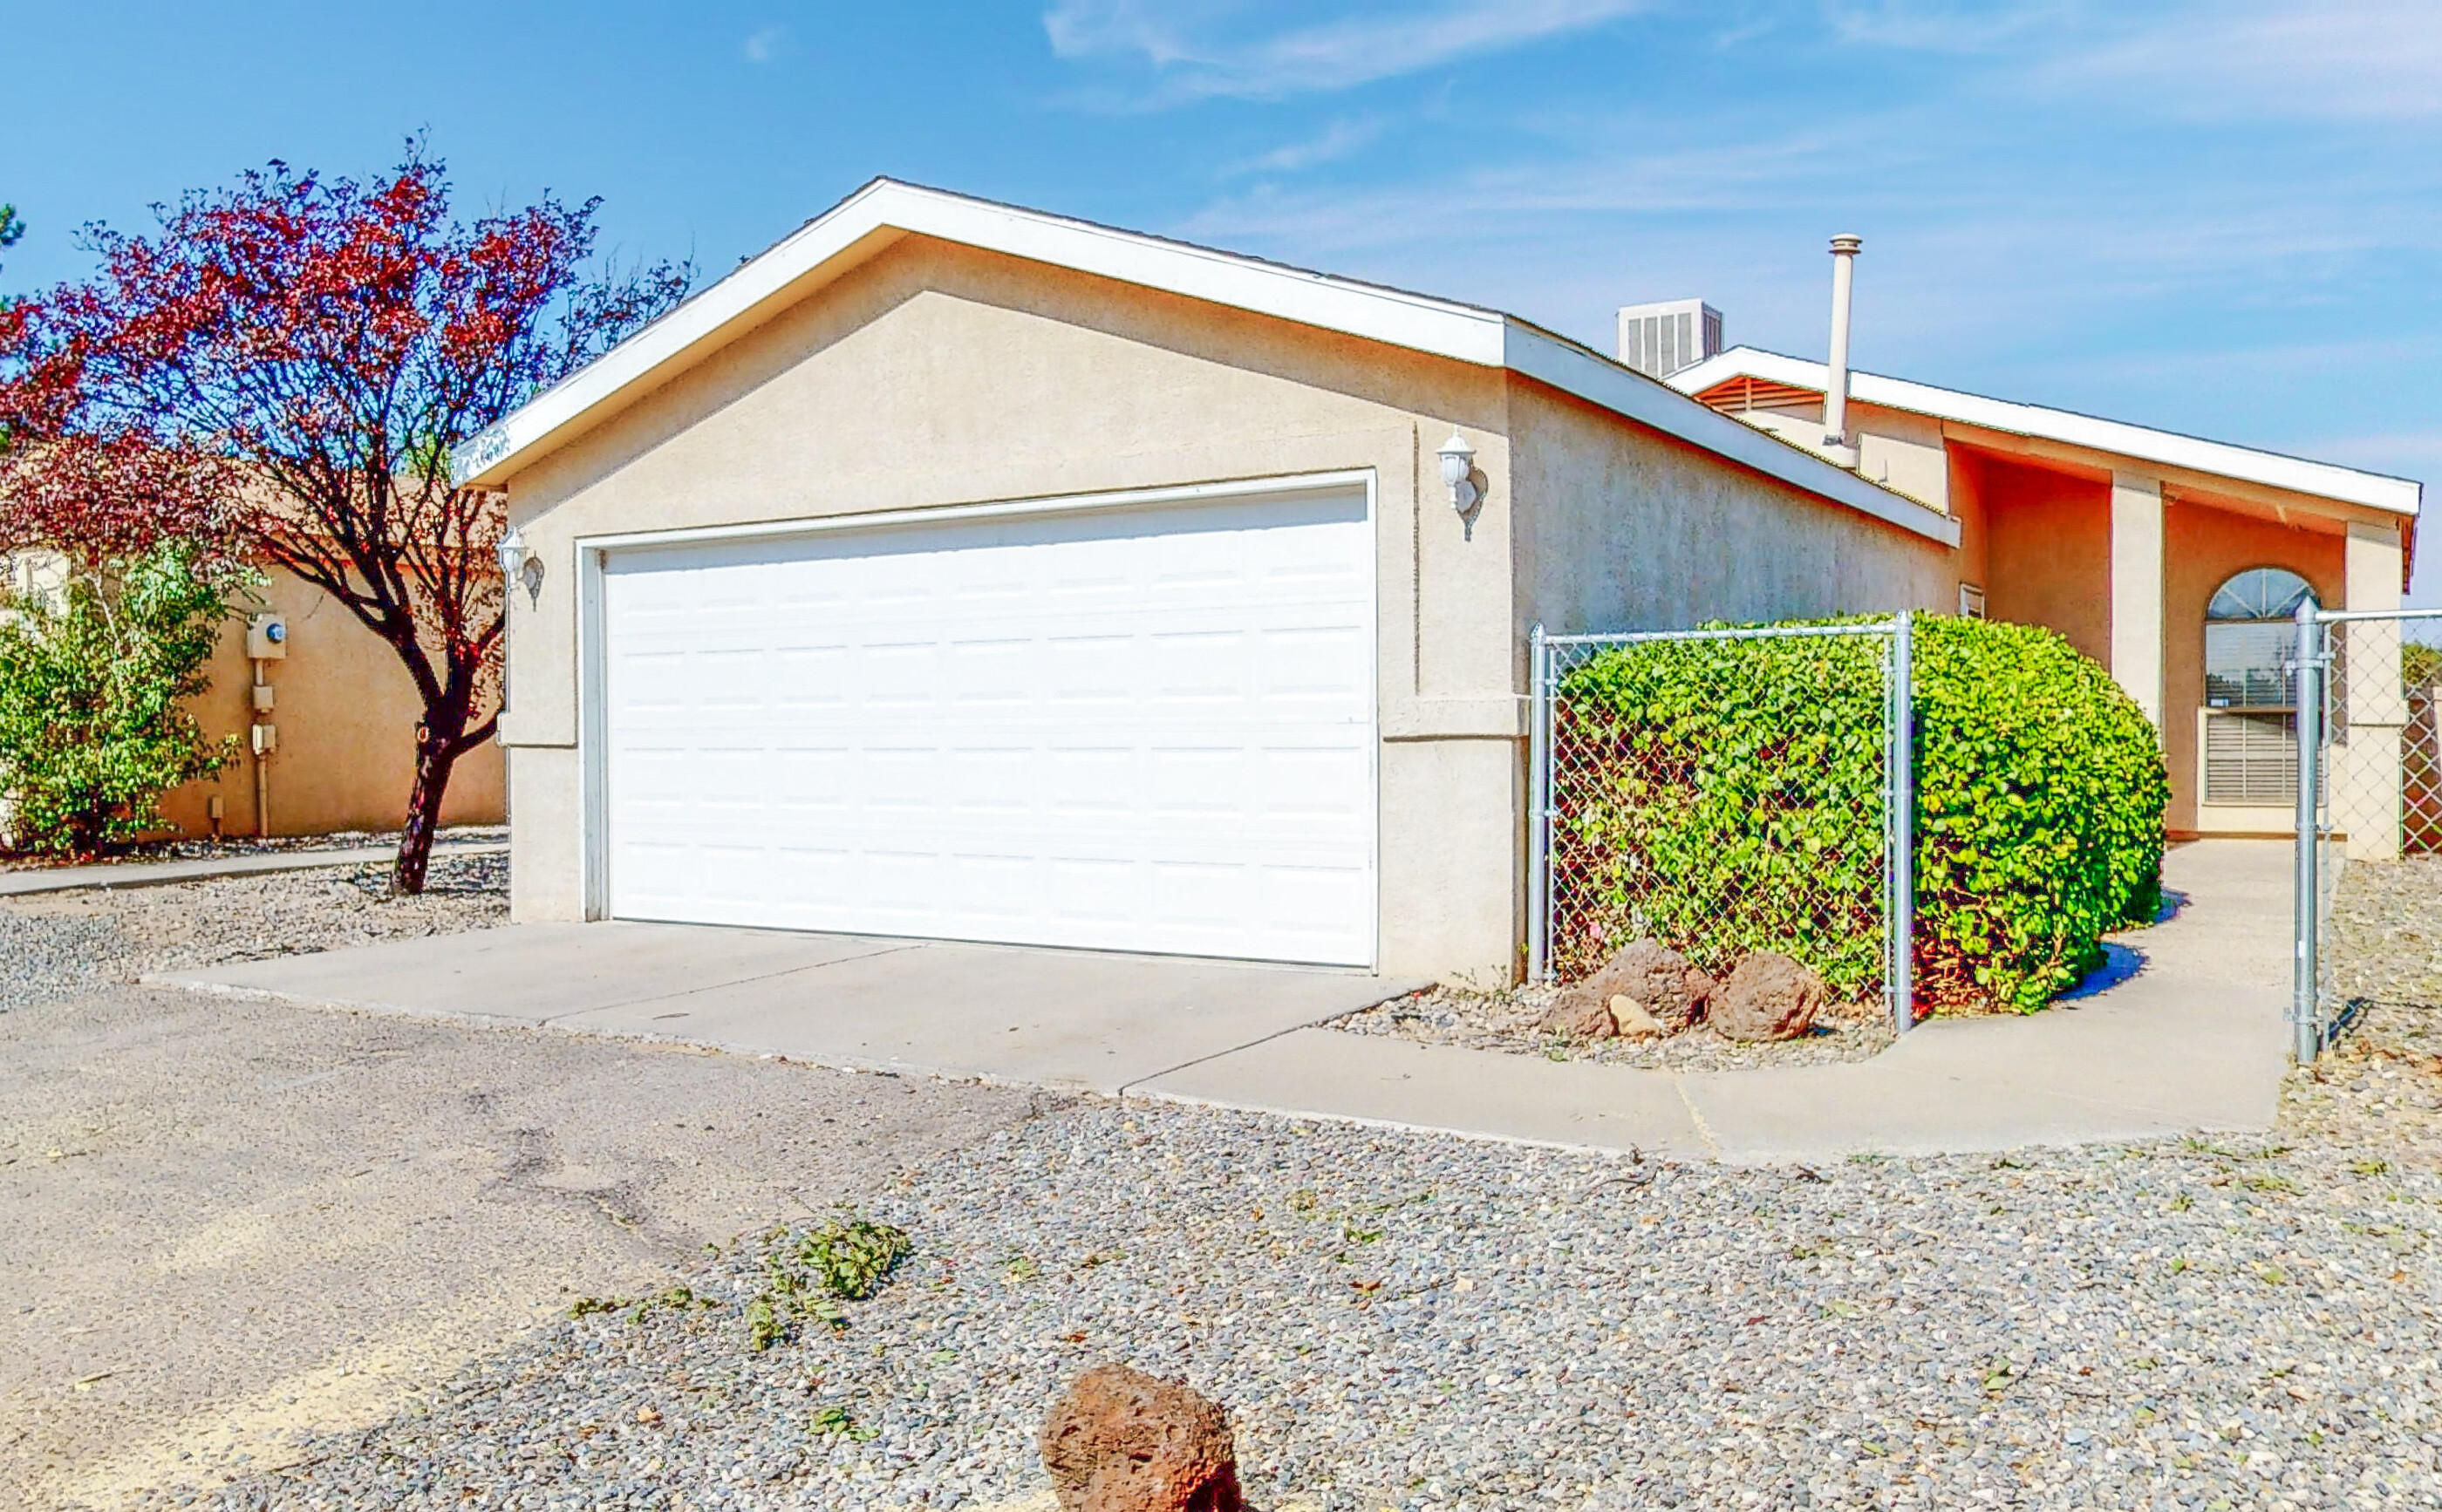 Brand new kitchen counters and sink installed 10/20/2020. Sweet home nestled in Rio Rancho's North Hills.  Two spacious bedrooms with 2 full bathrooms give great space.  Large backyard features no maintenance but lots of space for entertaining or recreation. NO POLY!  All poly was replaced.